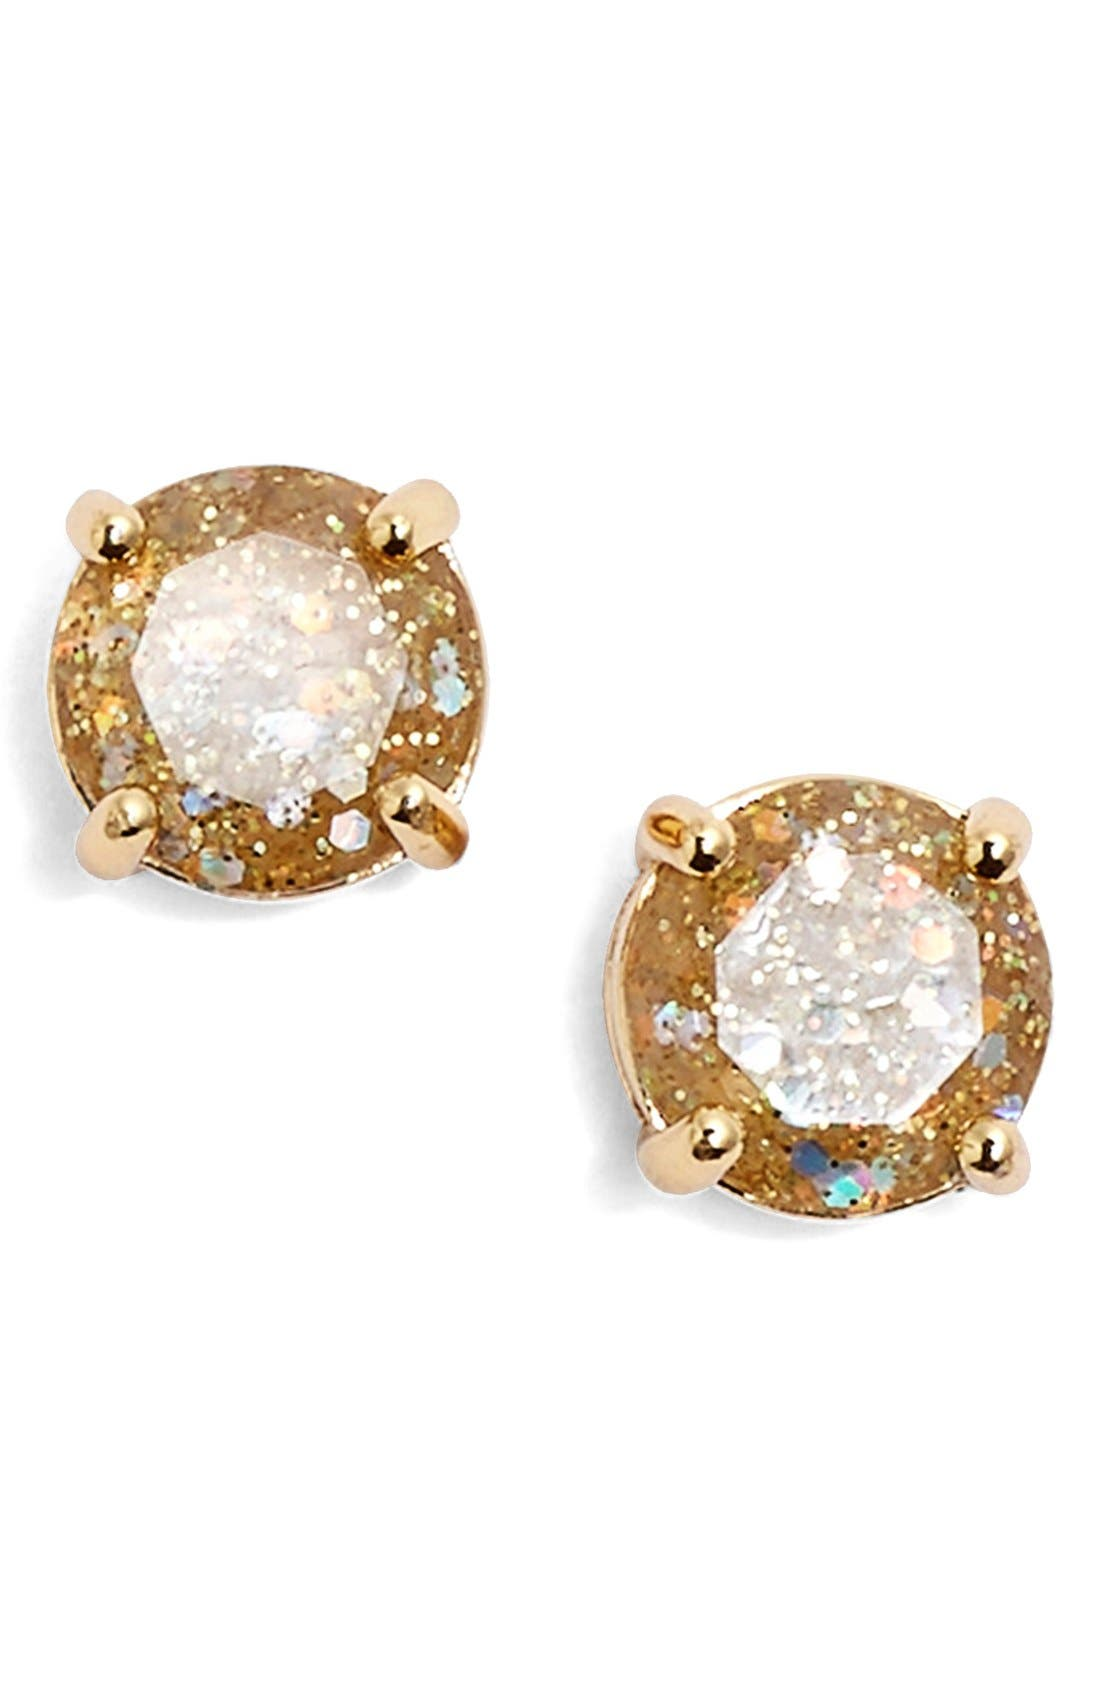 Main Image - kate spade new york 'mini glitter' stud earrings